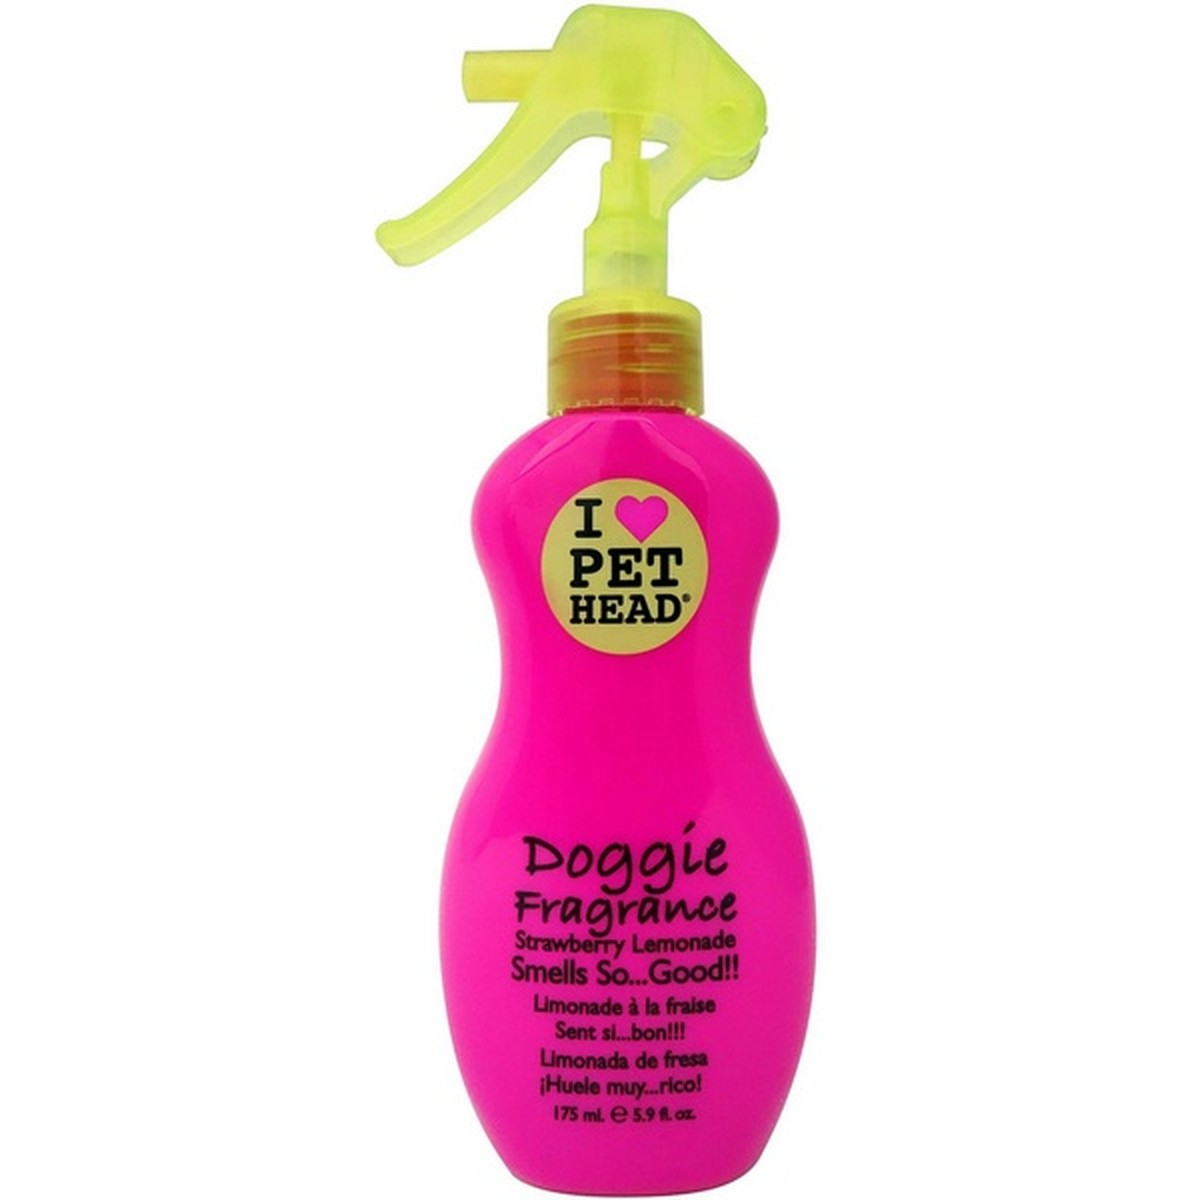 Pet Head Doggie Fragrance 175 ml  175 ml